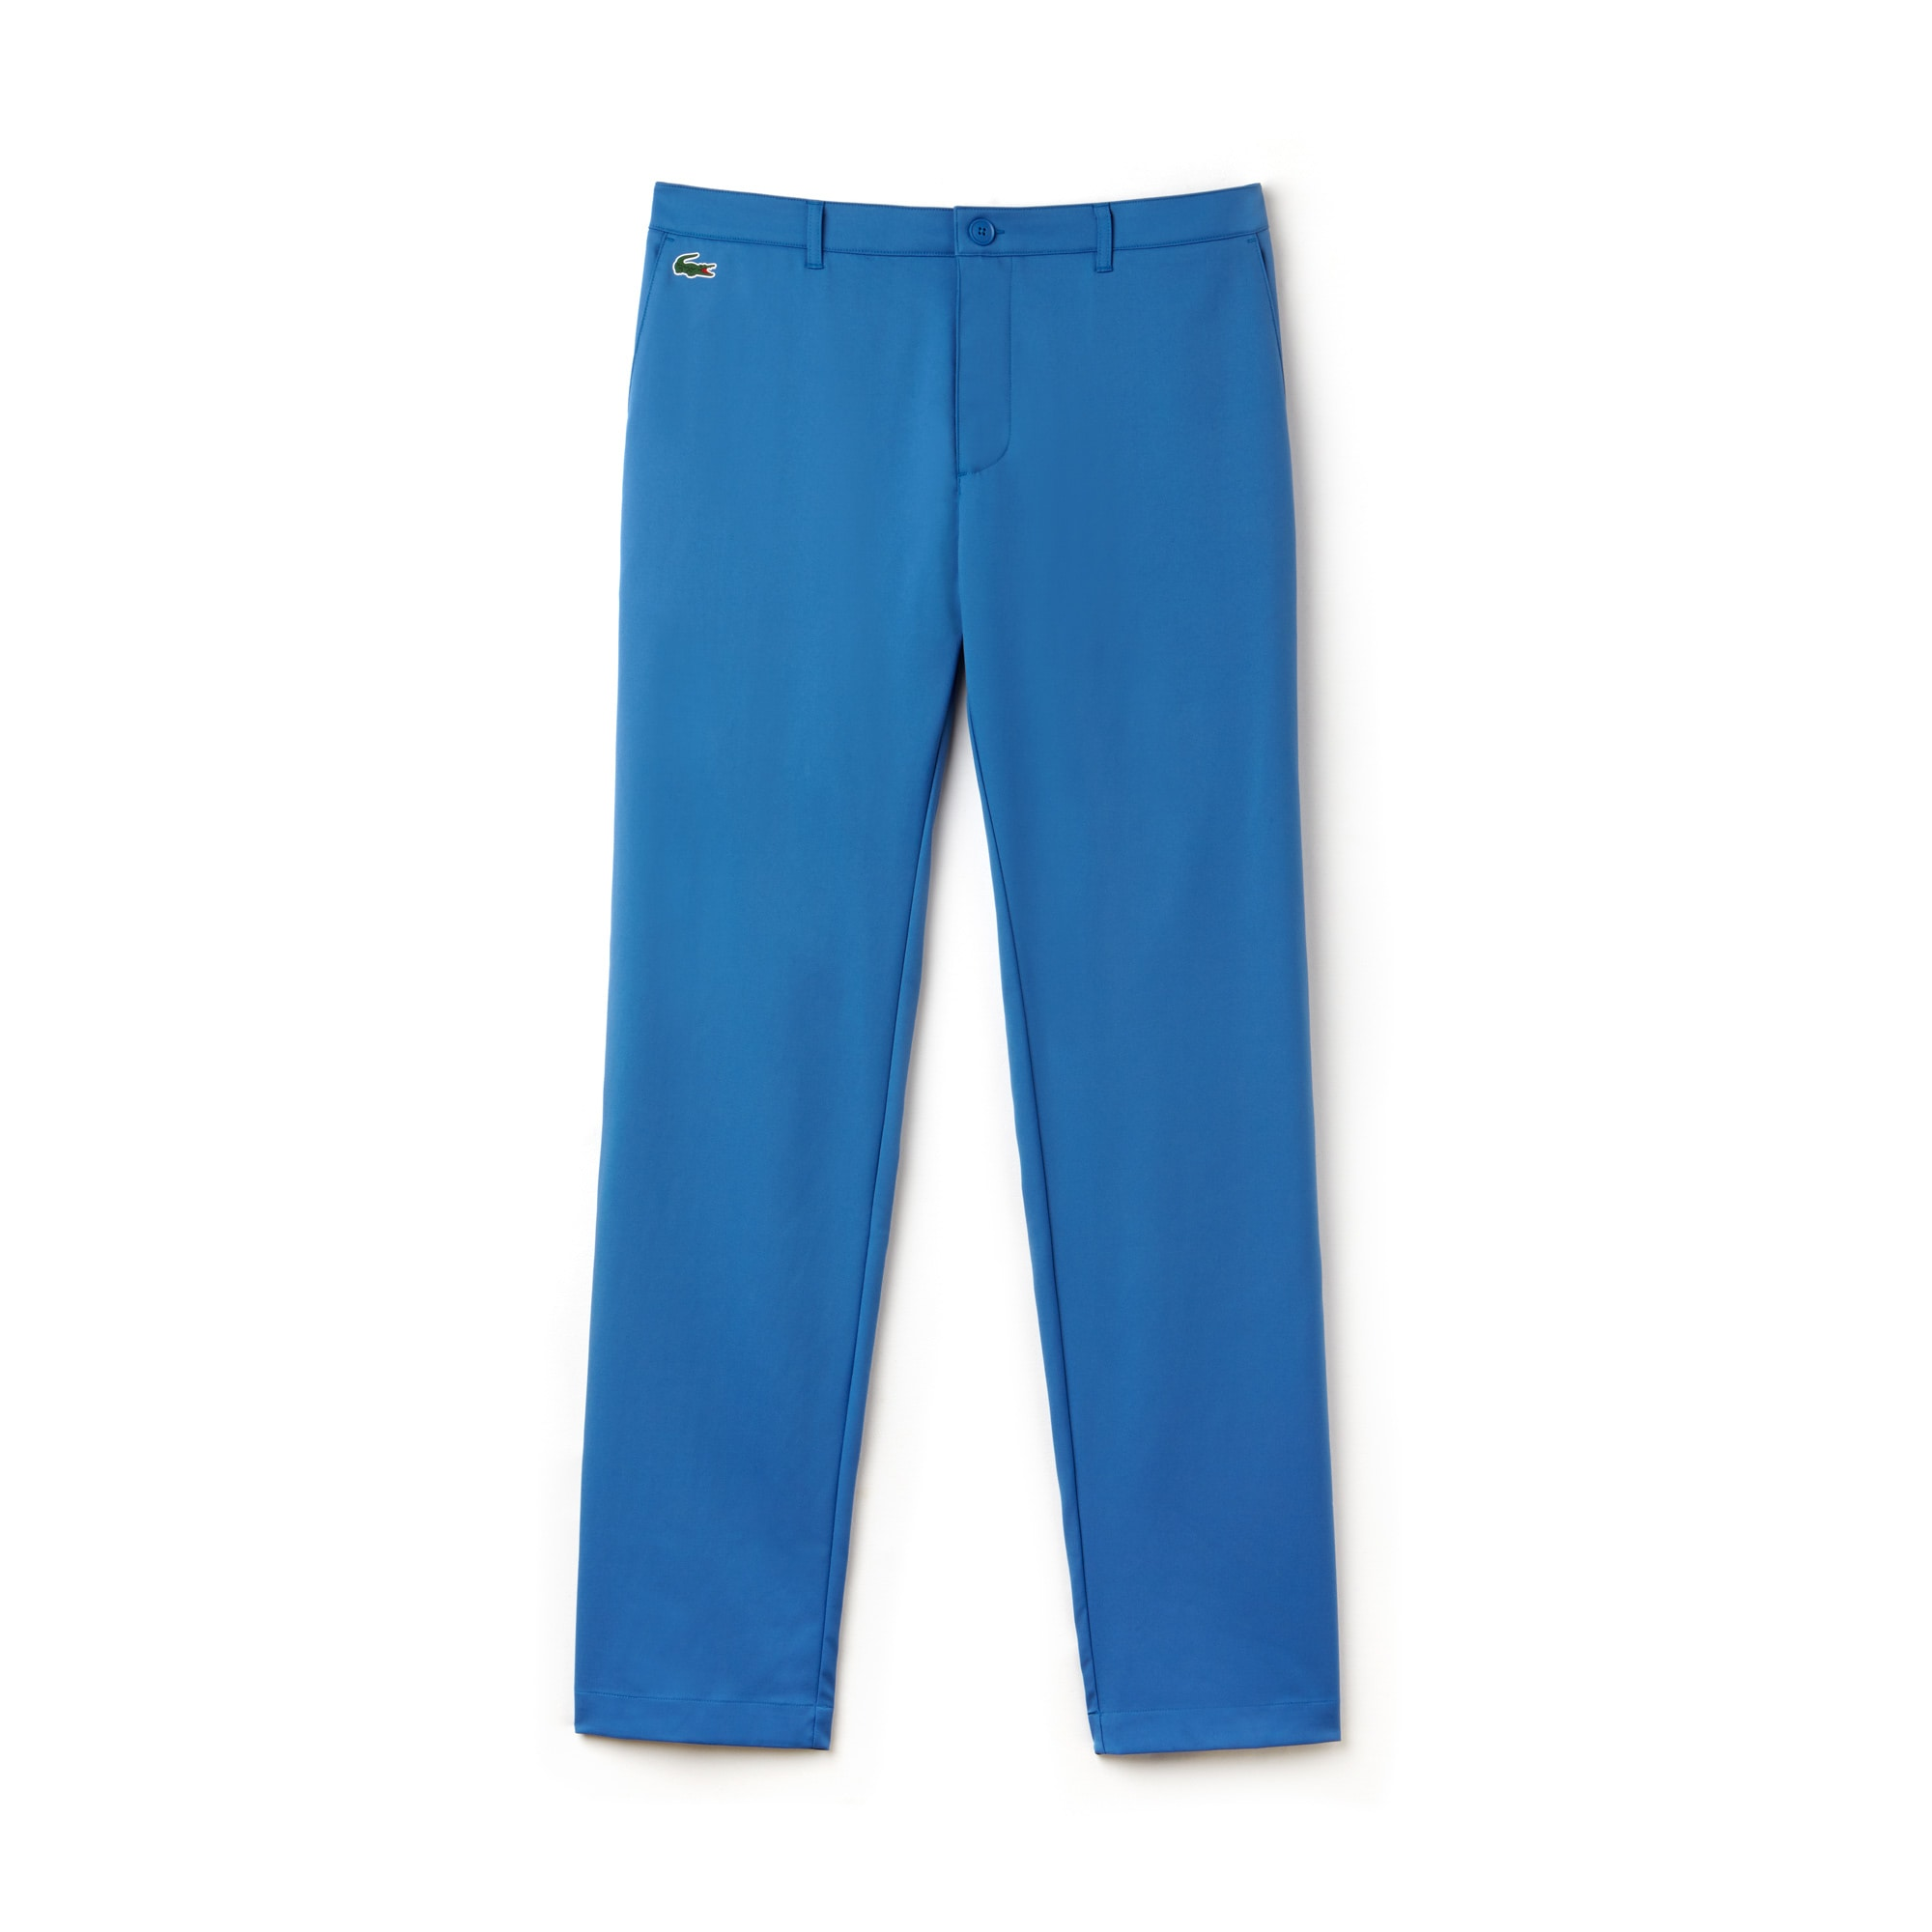 Men's SPORT Technical Golf Pants